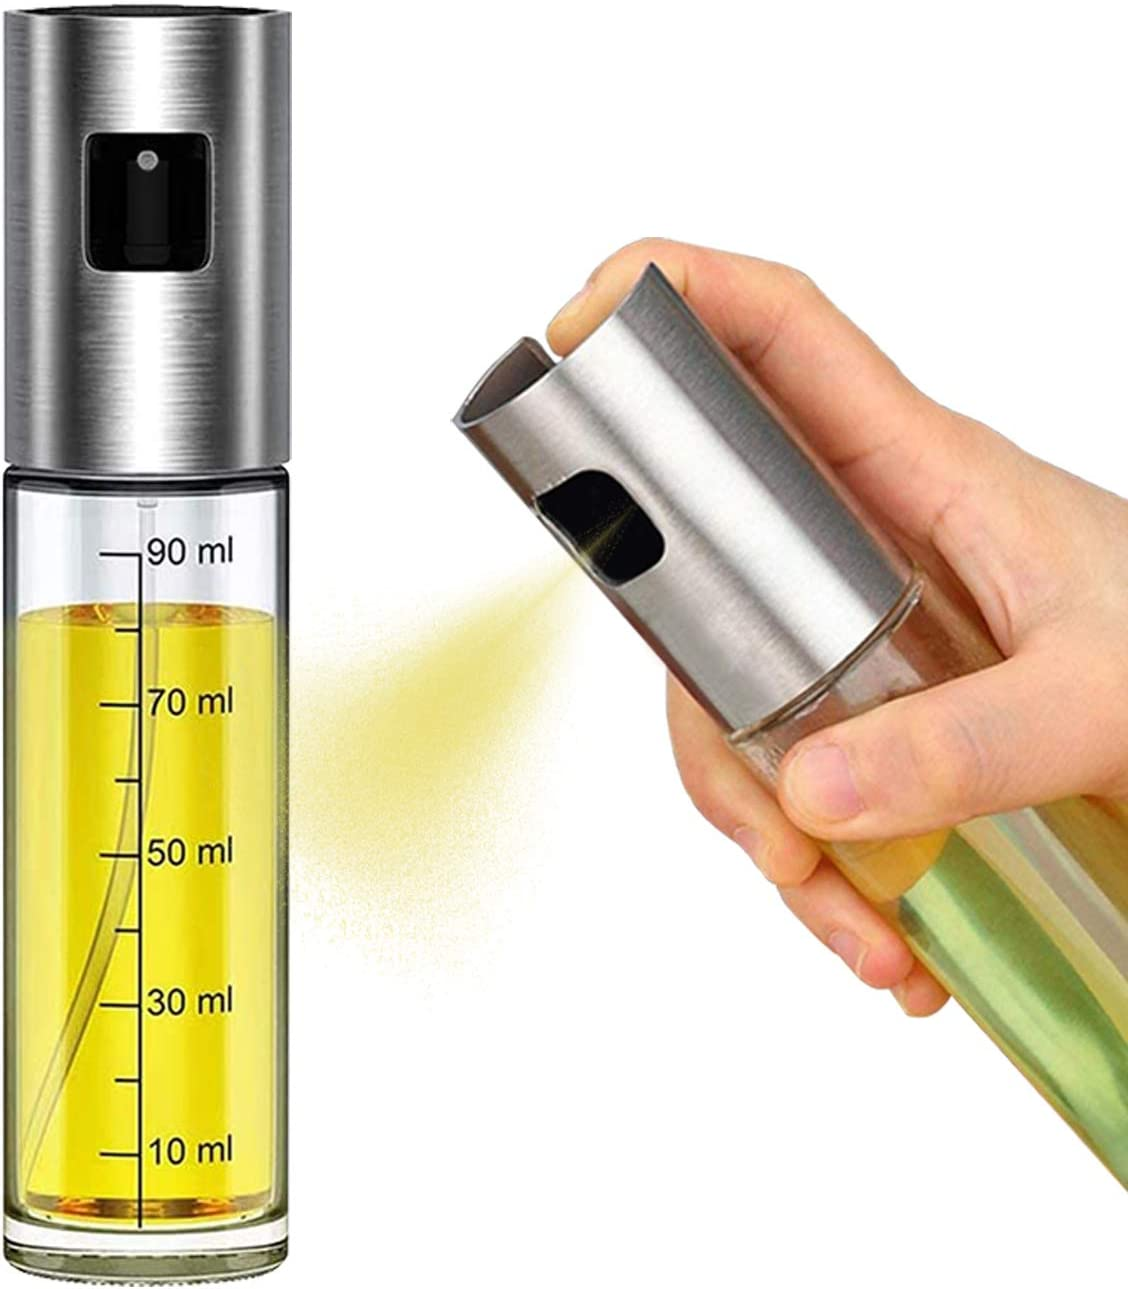 MISIMPO Olive Oil Sprayer for Cooking, Stainless Steel Mister Dispenser BBQ Refillable Oil Vinegar Spritzer with Oil Spray for Cooking Salad Grilling Roasting Air Fryer Kitchen